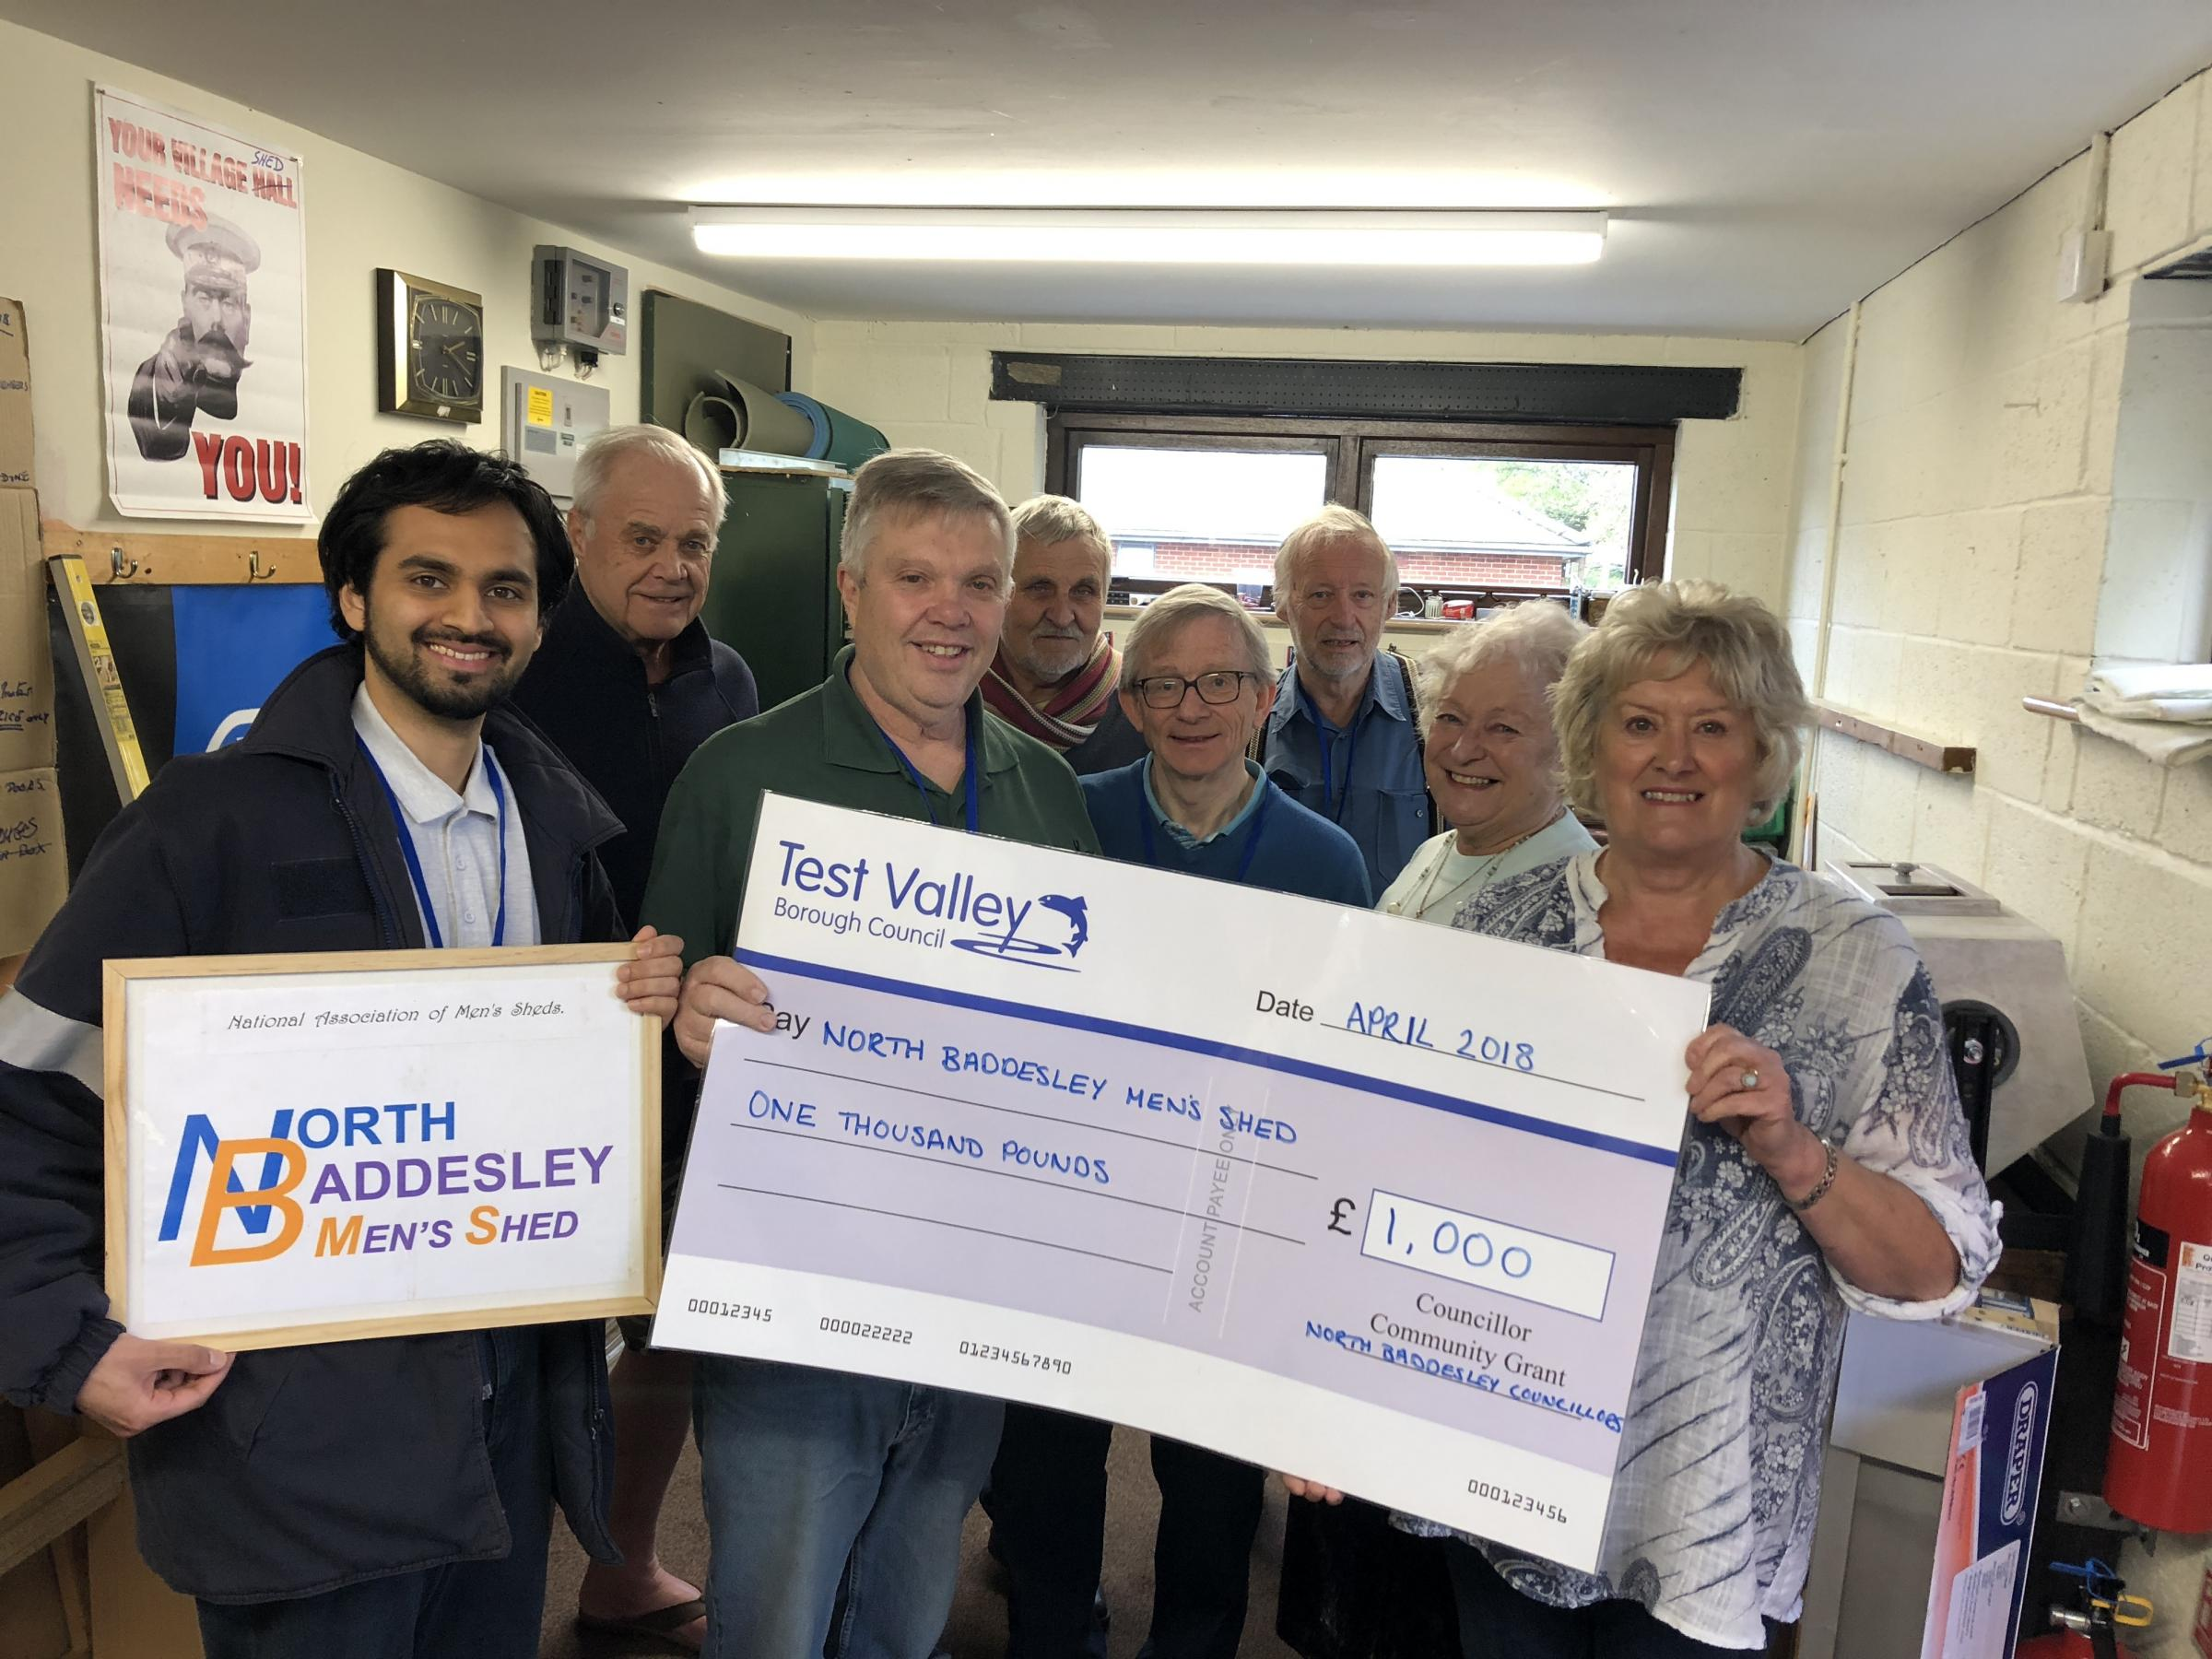 Members of North Baddesley Men's Shed are presented with the grant by councillors Ann Tupper and Celia Dowden